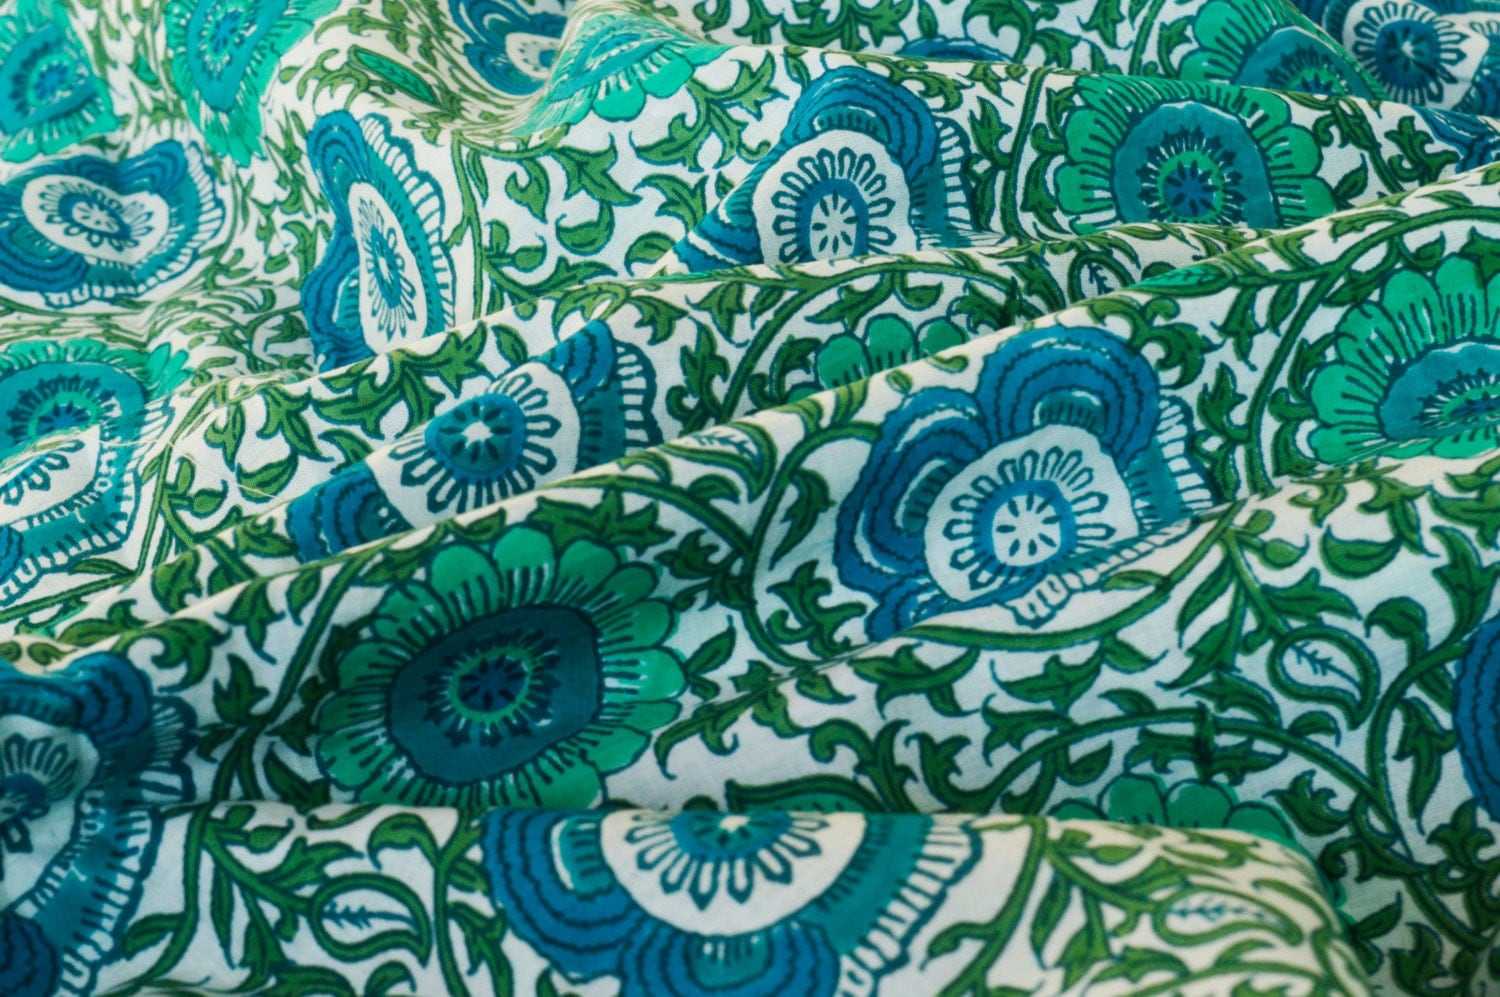 Teal Blue And Green Floral Print Fabric Cotton Fabric Indian